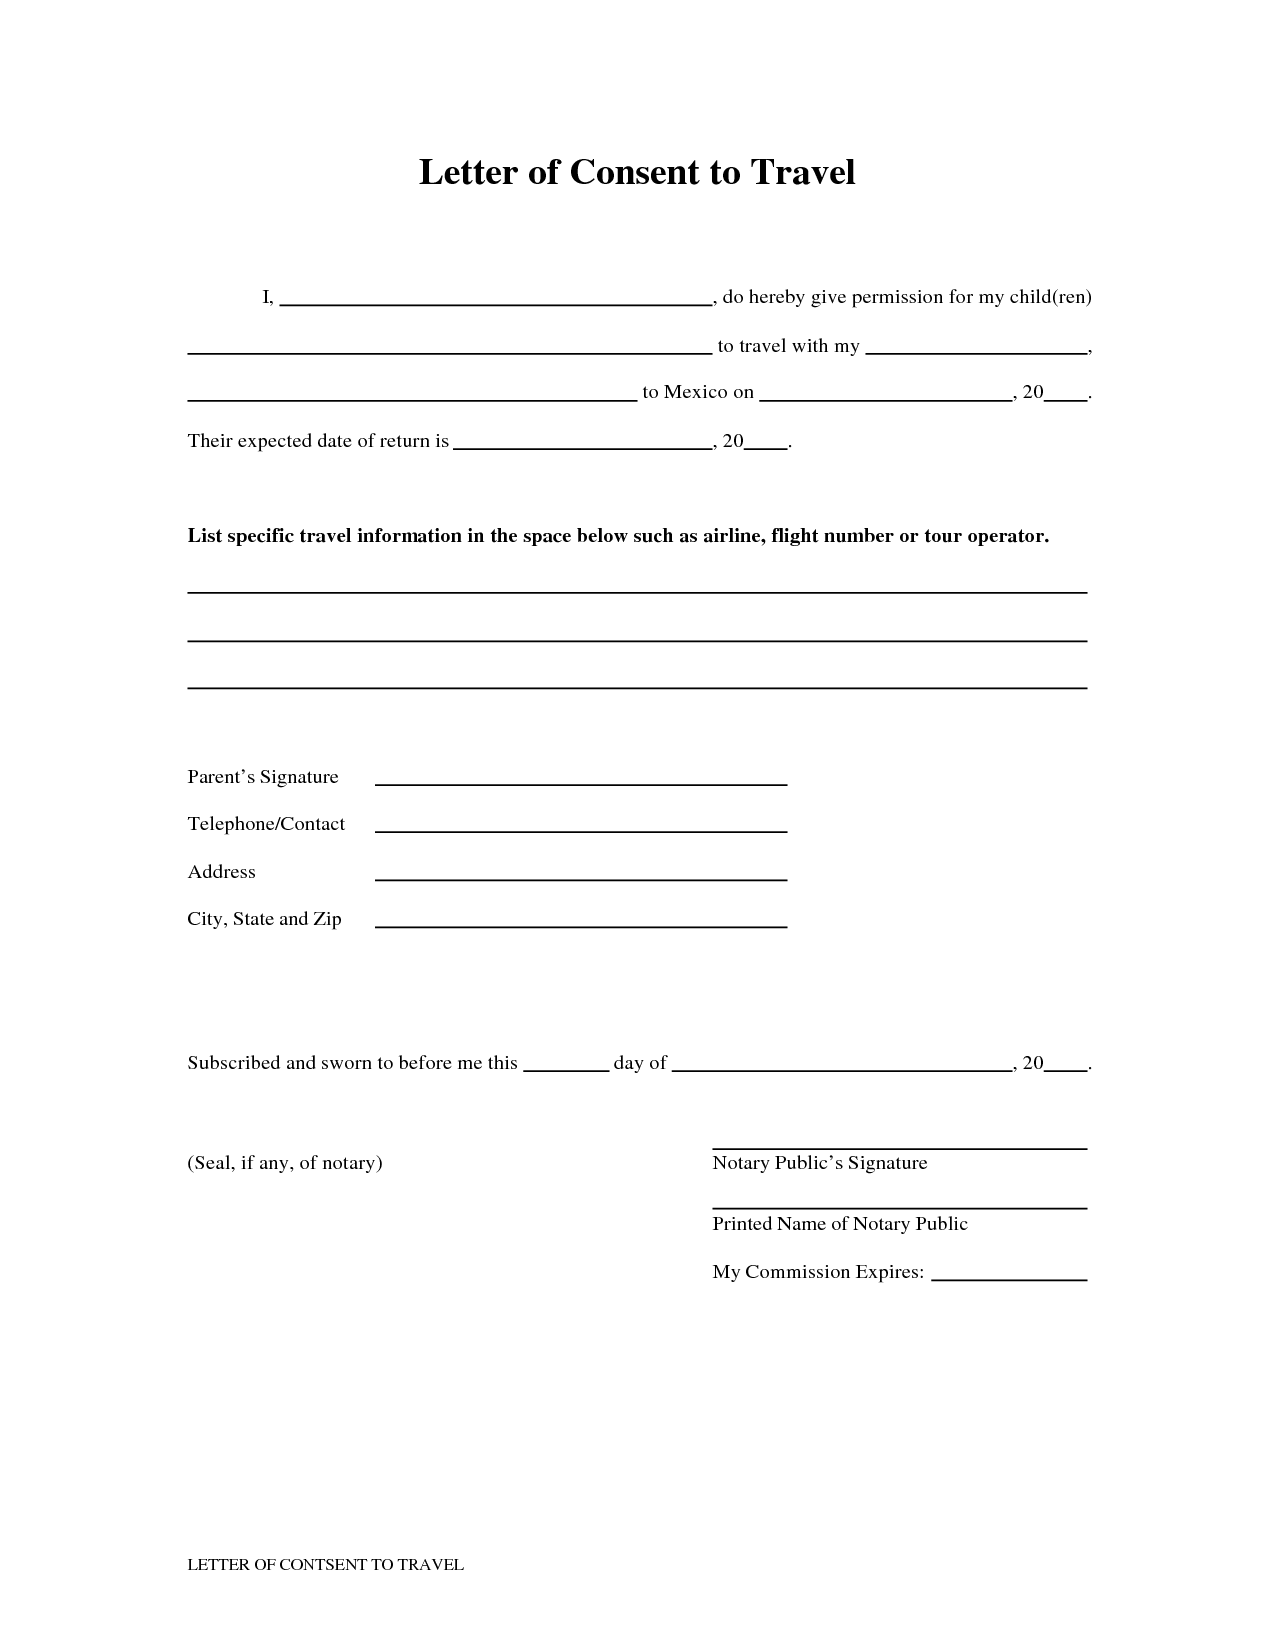 Authorization Letter For Minor To Travel without Parents